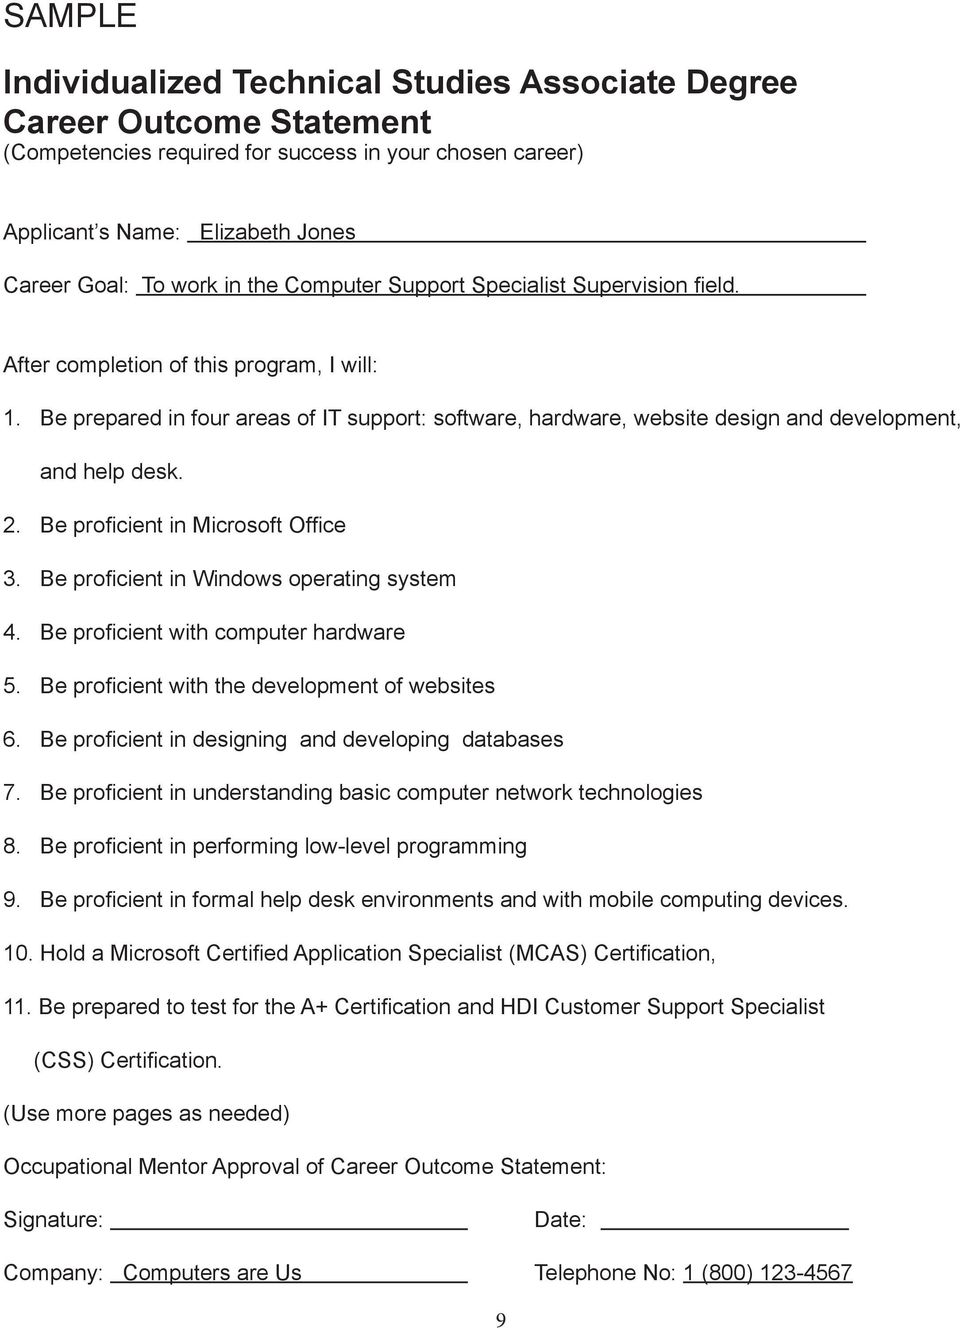 Be prepared in four areas of IT support: software, hardware, website design and development, and help desk. 2. Be proficient in Microsoft Office 3. Be proficient in Windows operating system 4.